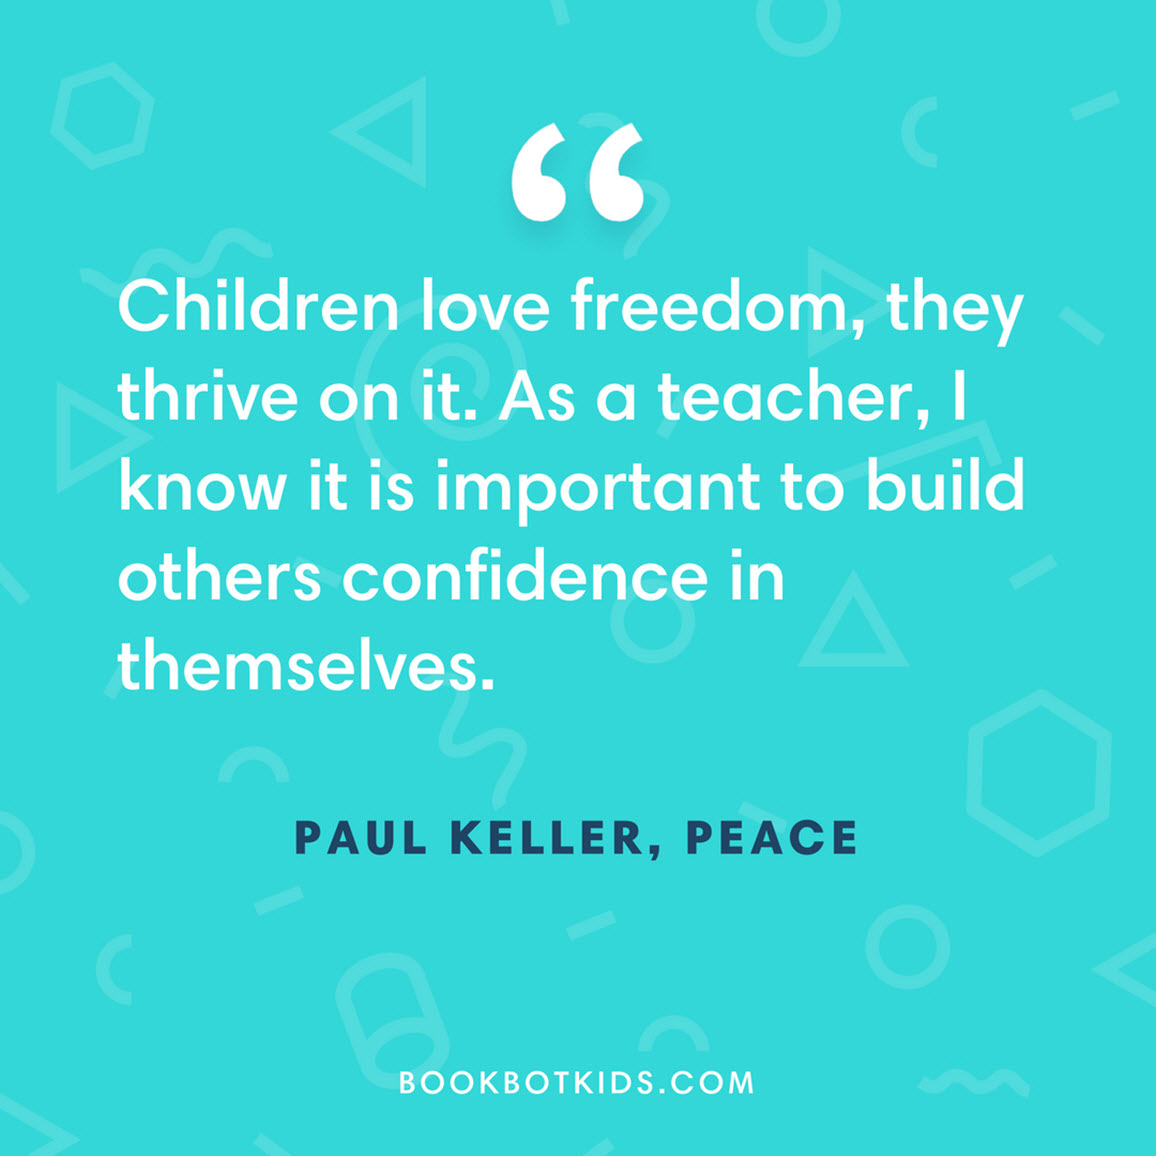 Children love freedom, they thrive on it. As a teacher, I know it is important to build others confidence in themselves. – Paul Keller, Peace